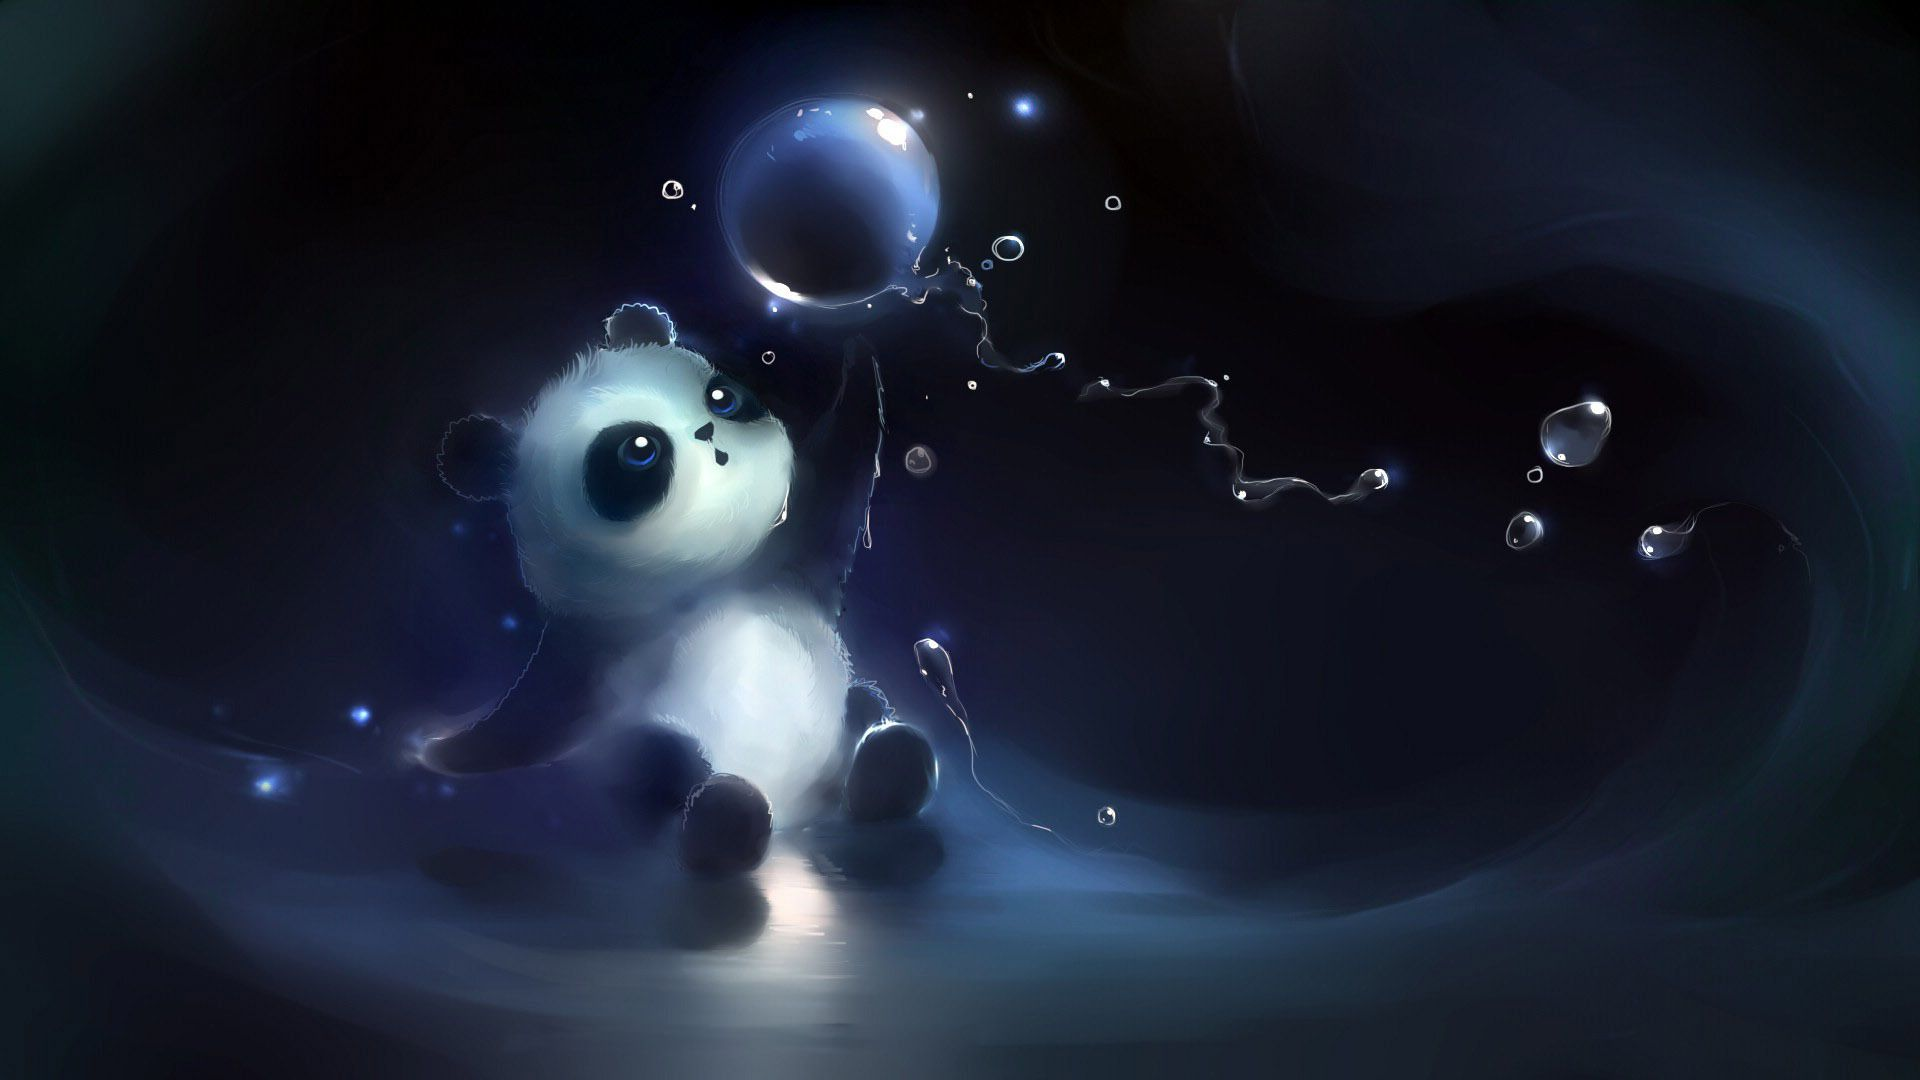 Panda Playing With The Bubble Hd Wallpaper